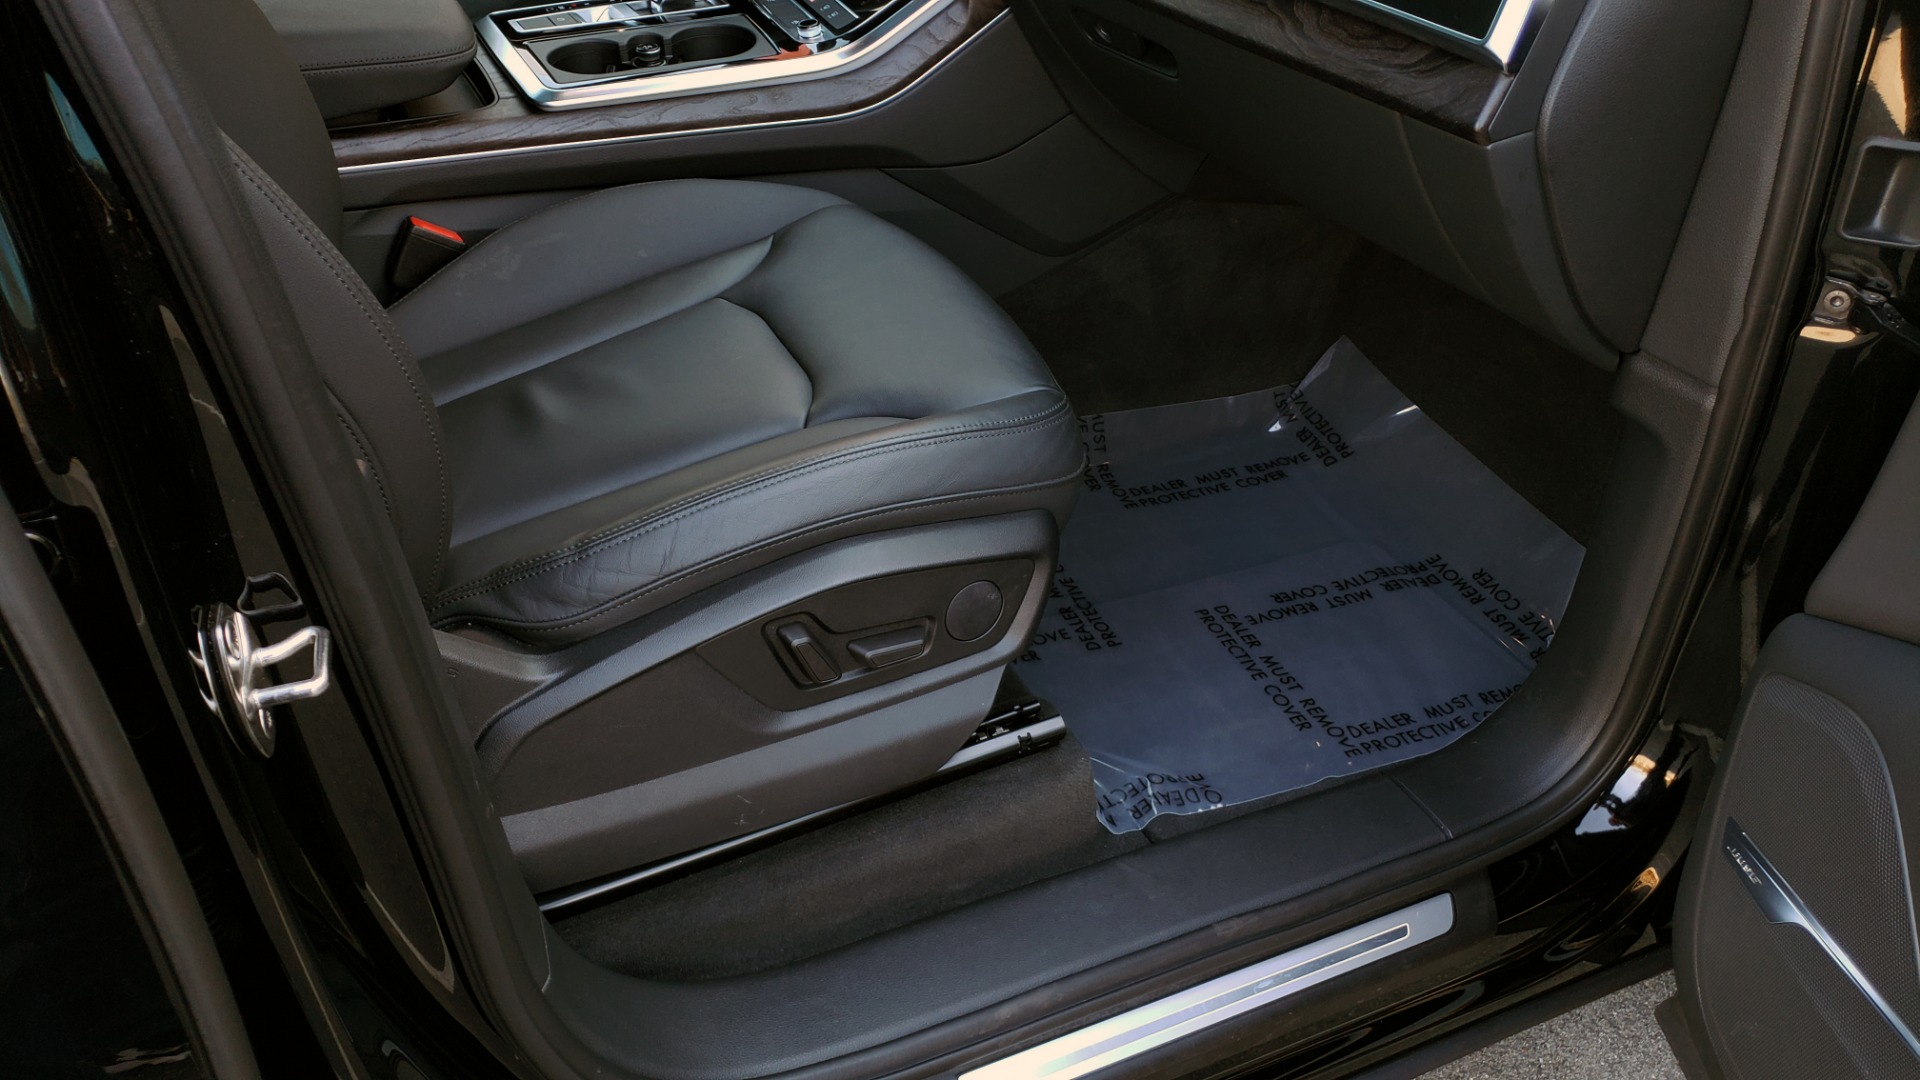 Used 2020 Audi Q7 PREMIUM PLUS / NAV / SUNROOF / 3-ROW / REARVIEW for sale Sold at Formula Imports in Charlotte NC 28227 73